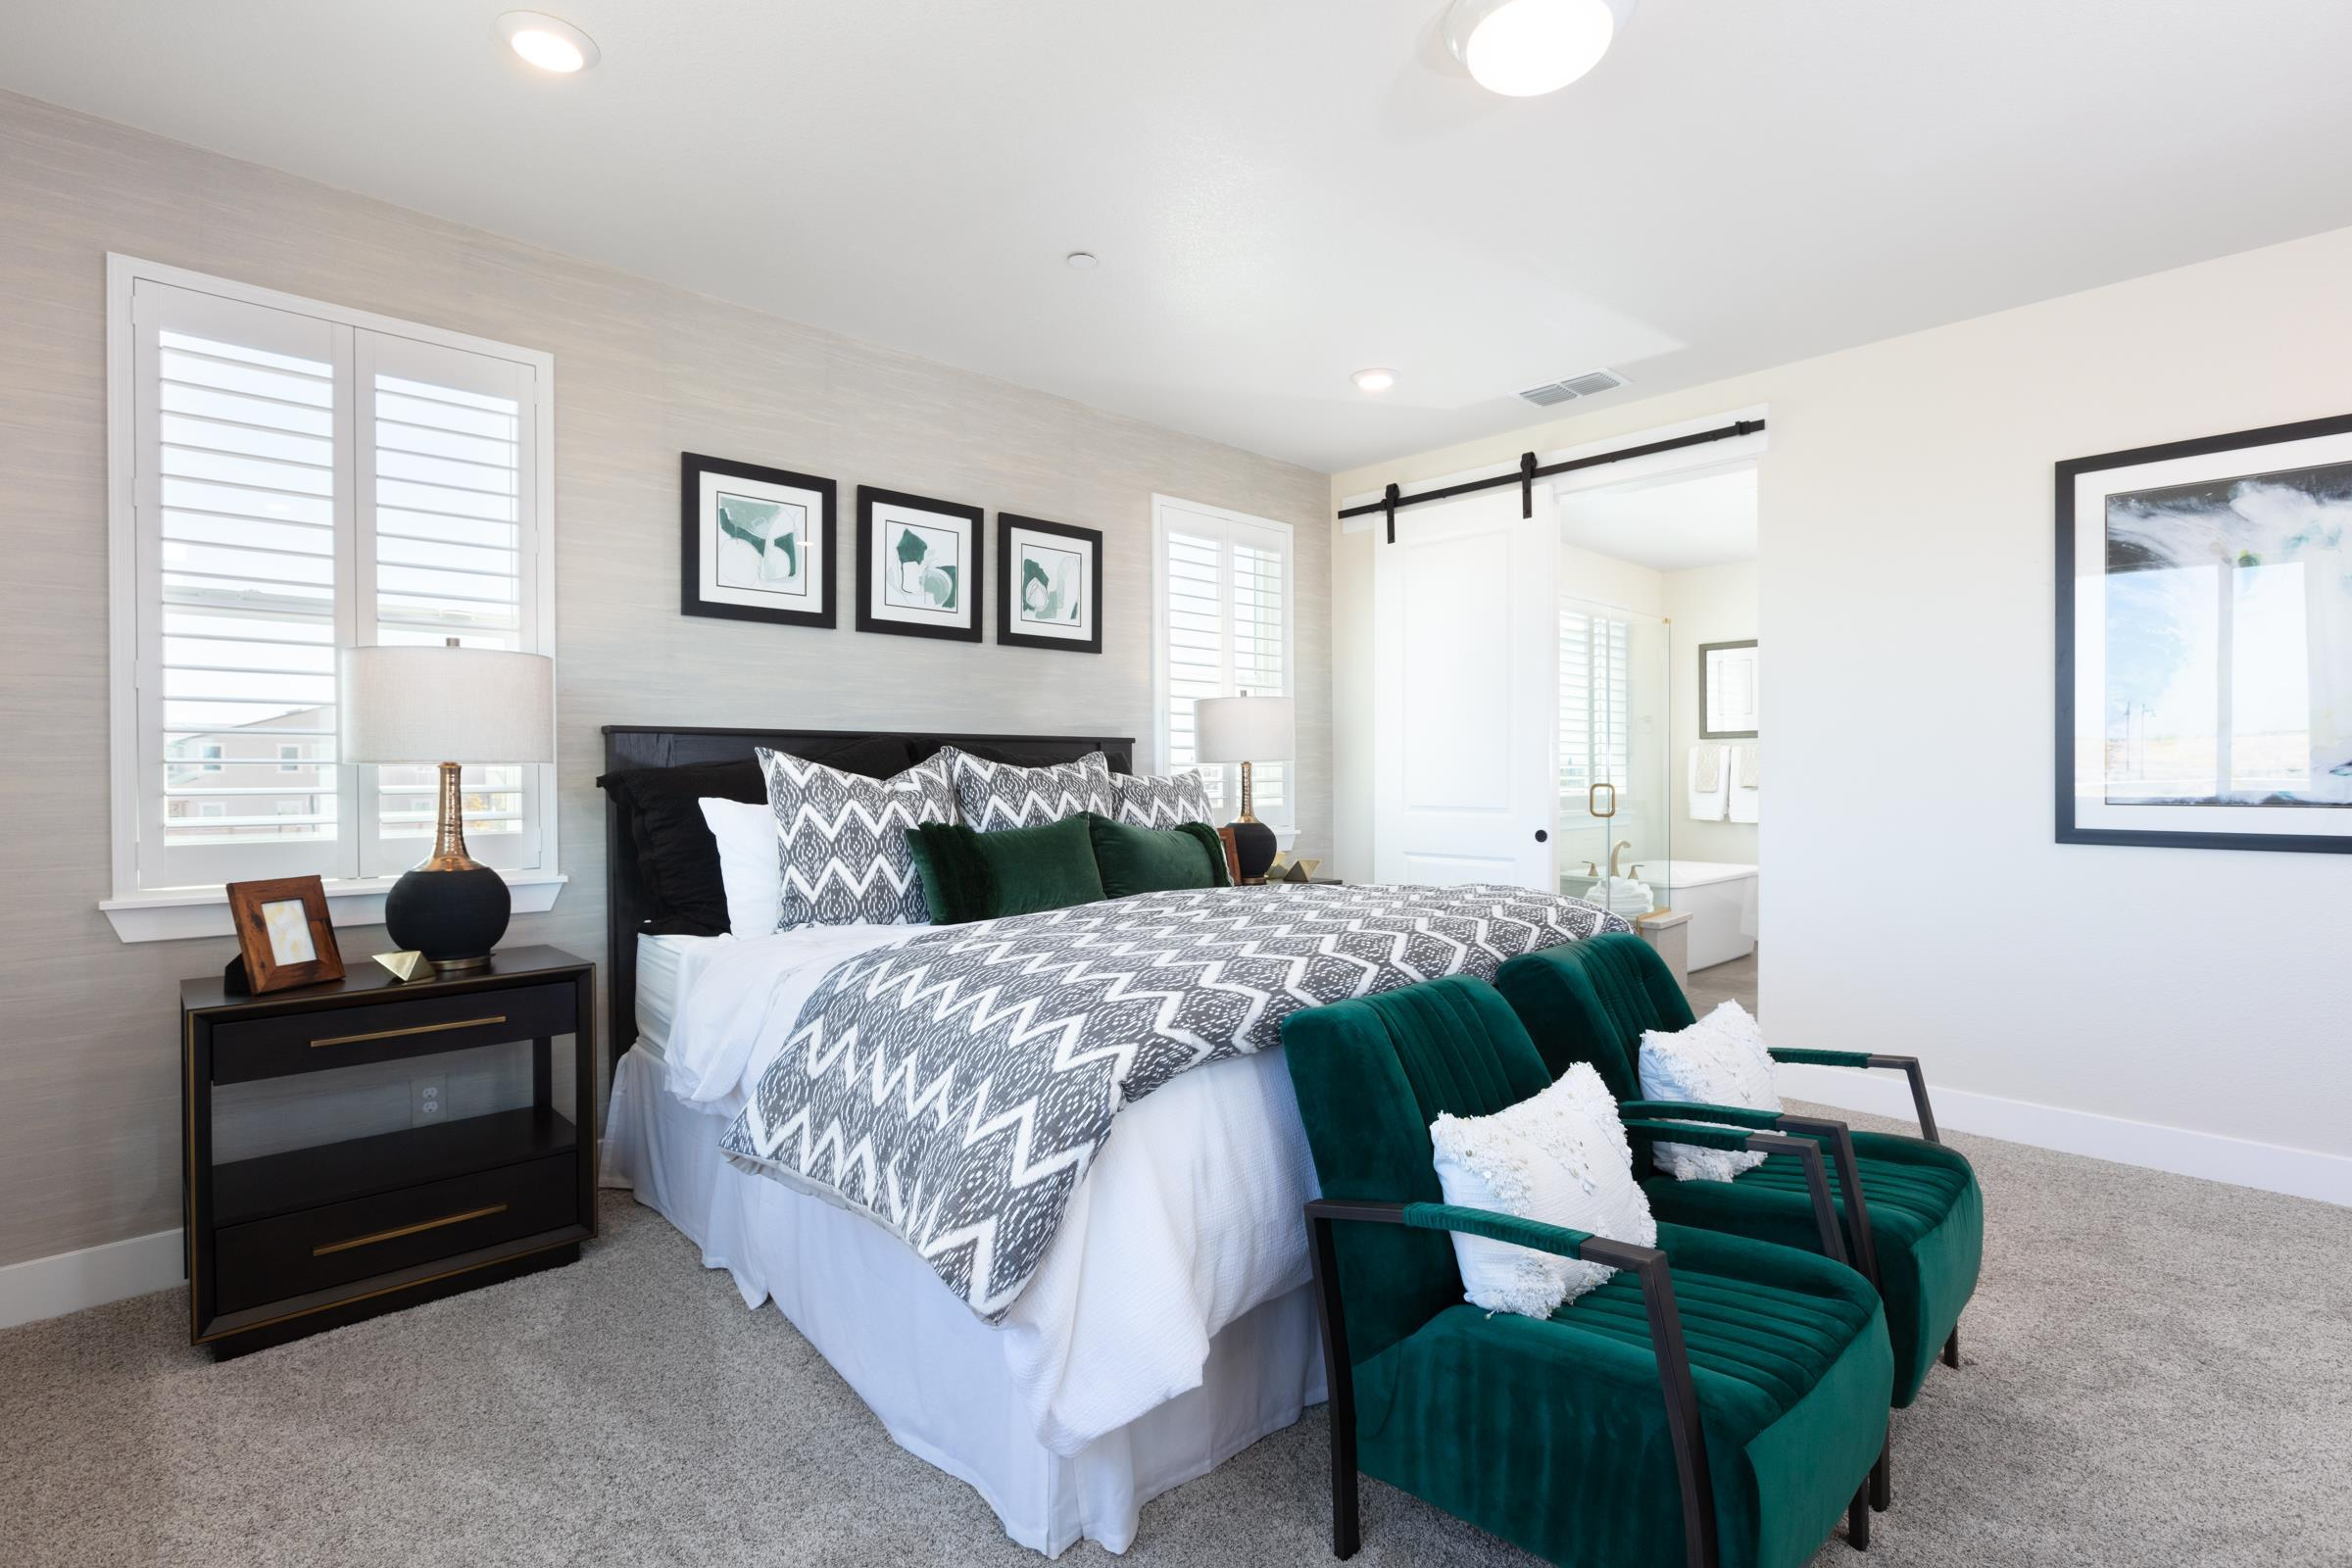 Bedroom featured in the Plan 3 By Anthem United Homes Inc in Stockton-Lodi, CA